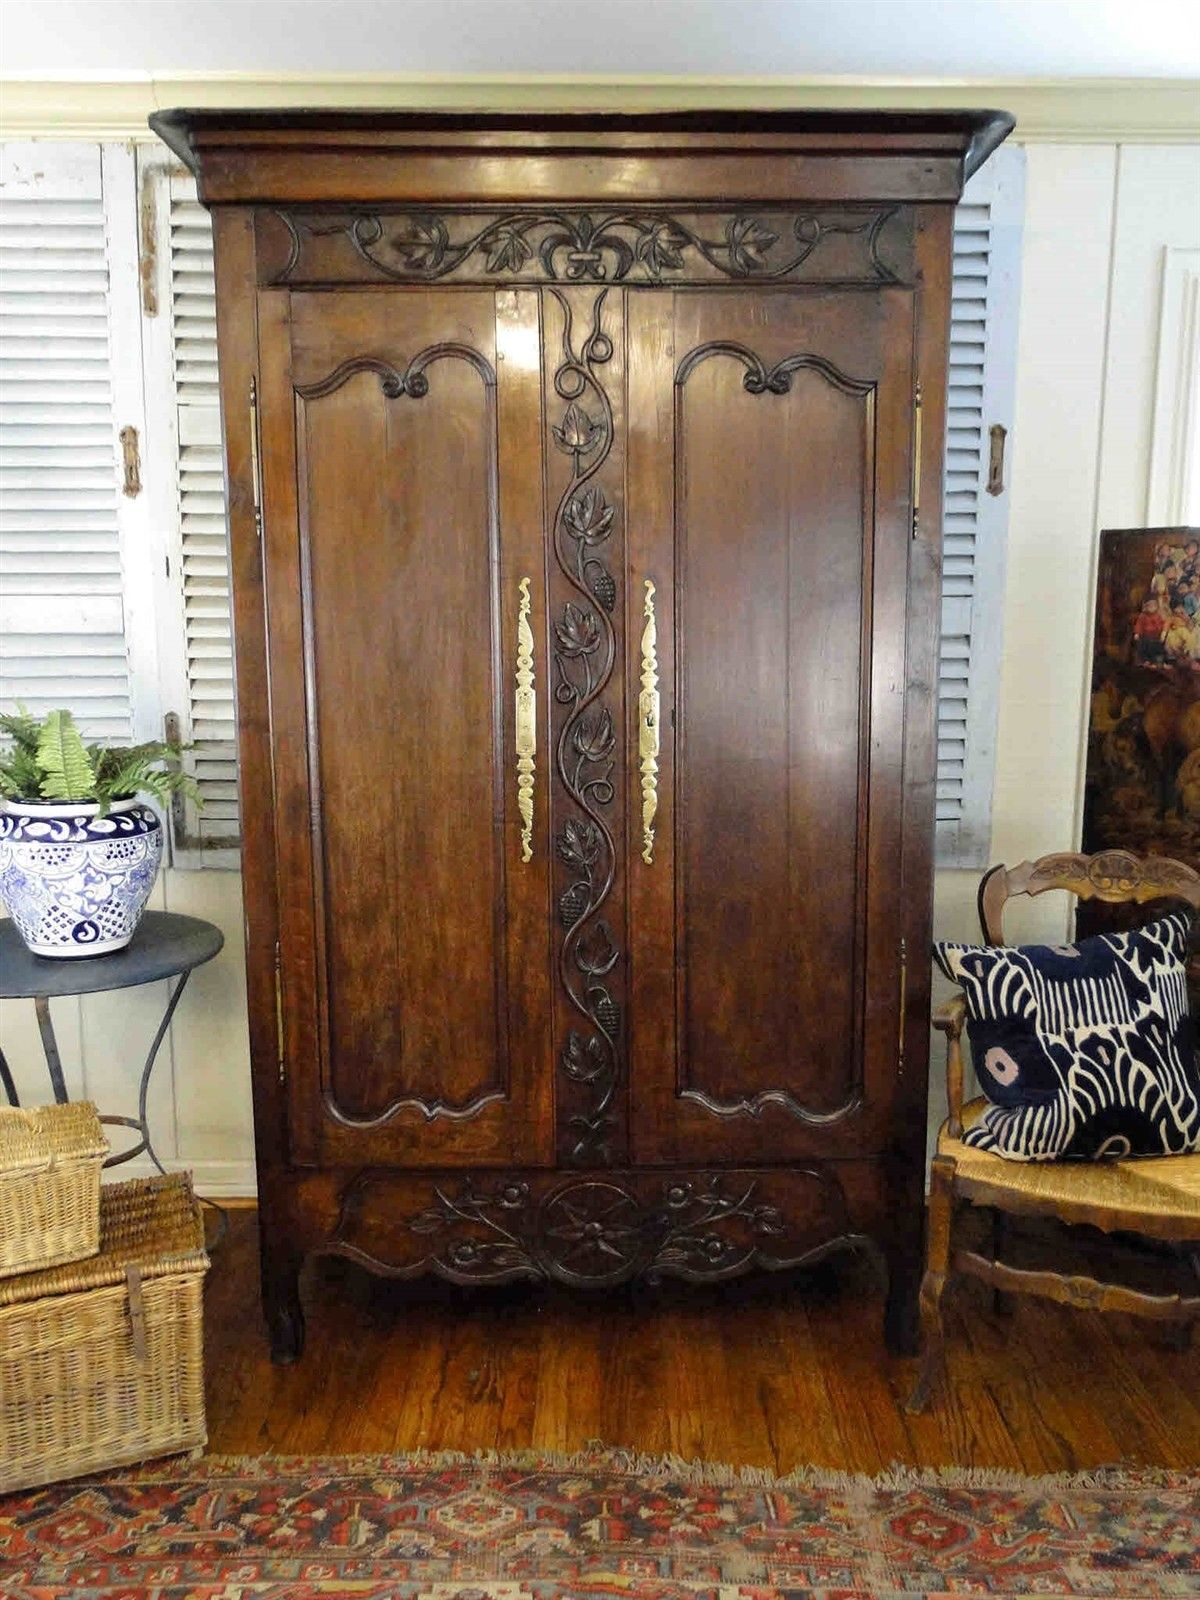 Antique French Armoire Wedding Wardrobe Recessed Panels Carving Shelves, key